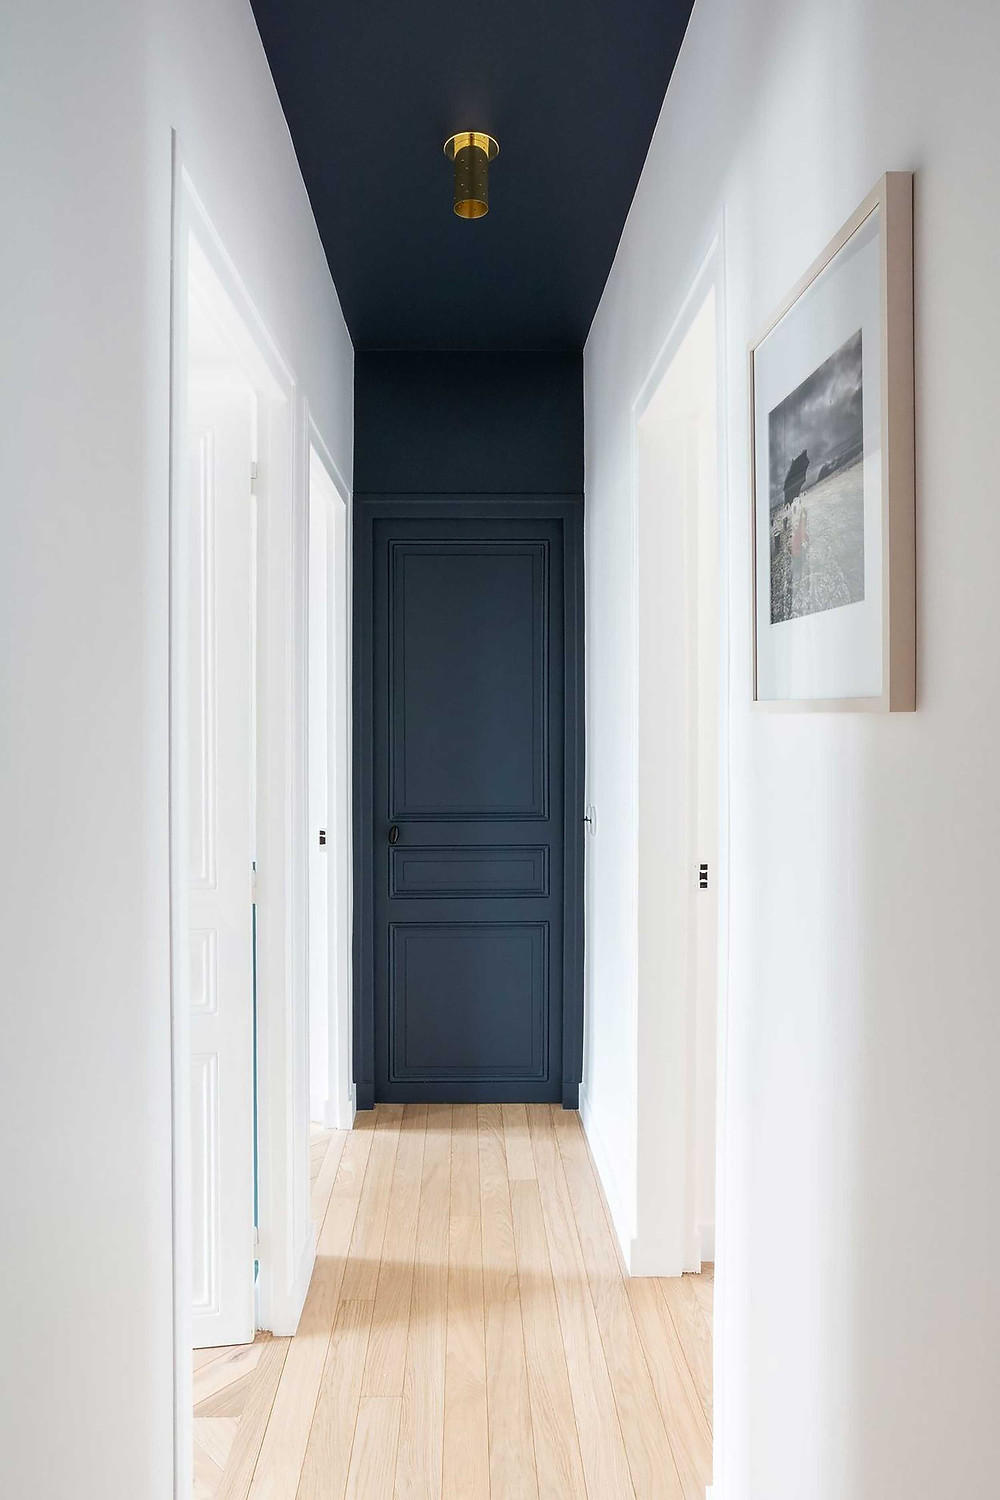 Creative ways to use paint around your home | Corridor ceiling painted in dark blue colour painted by hand | Seasons in Colour Interiors Blog